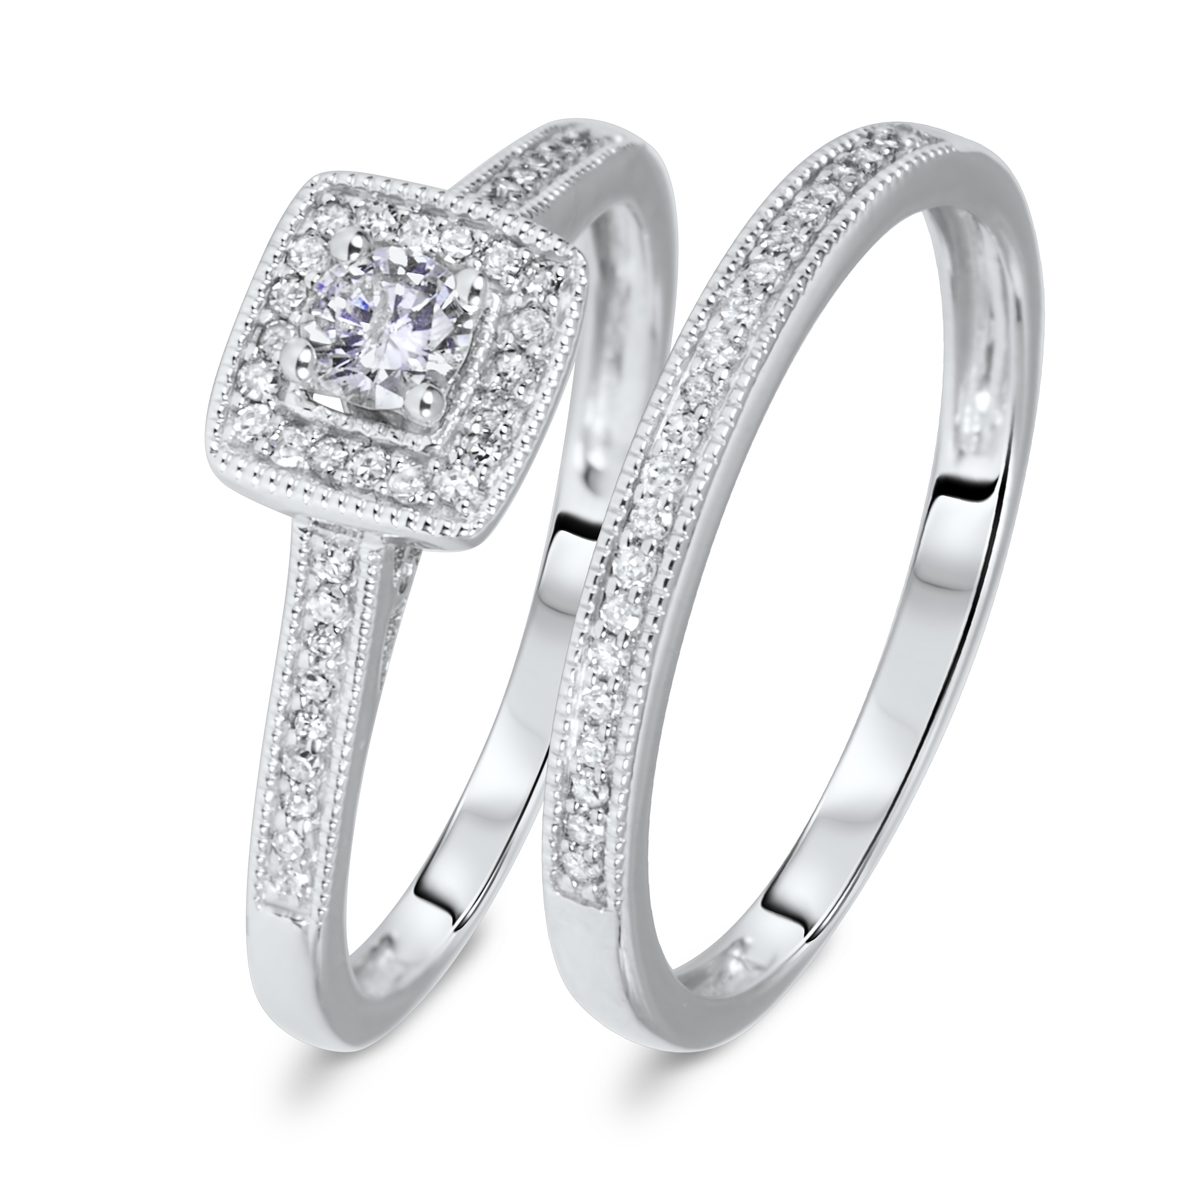 T W Round Cut Diamond Las Bridal Wedding Ring Set 10k White Gold